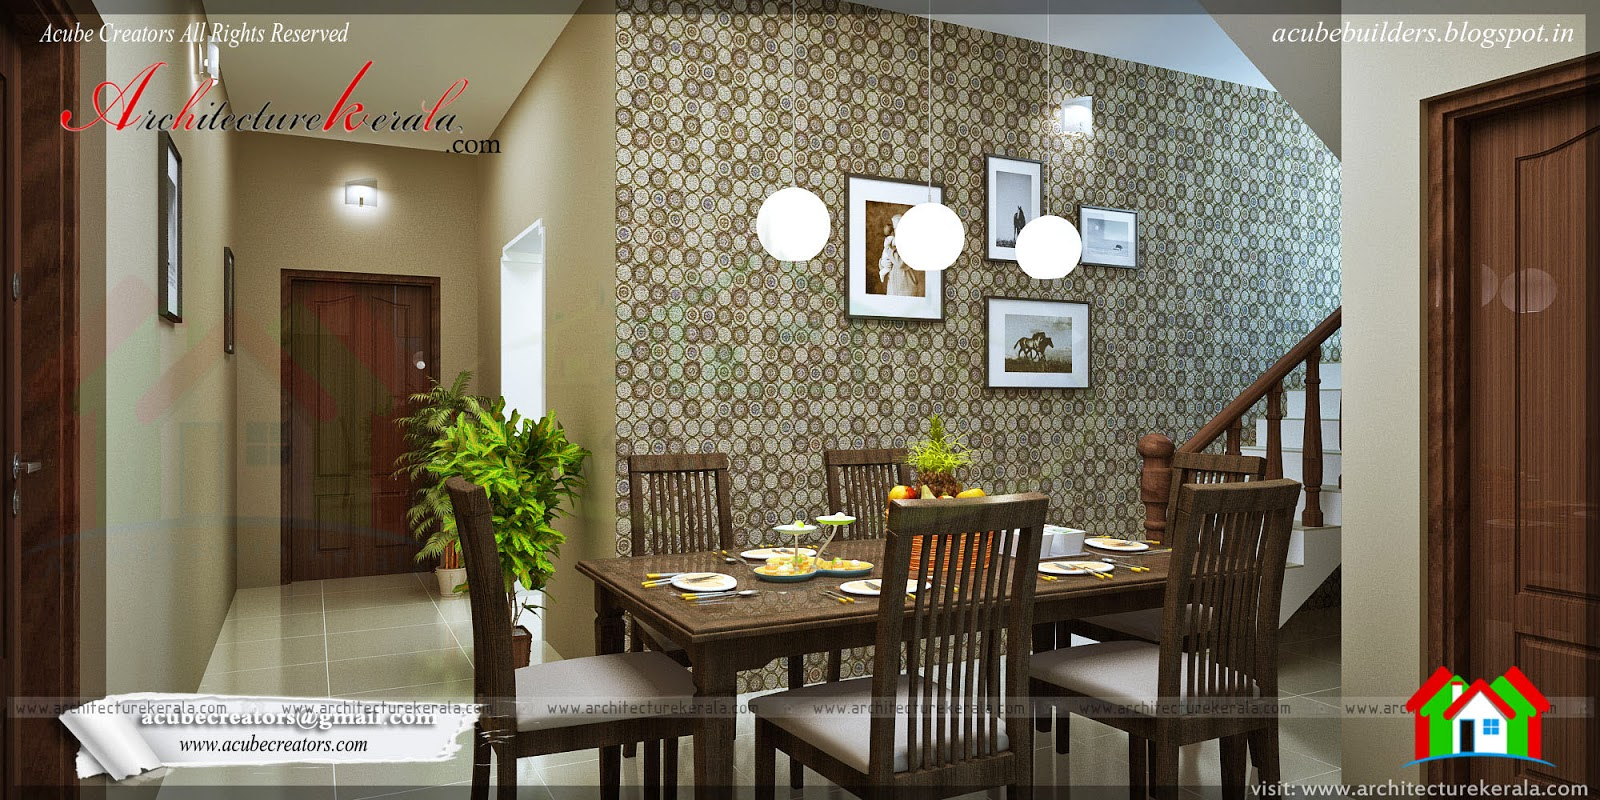 Dining room interior design architecture kerala for Dining room interior images